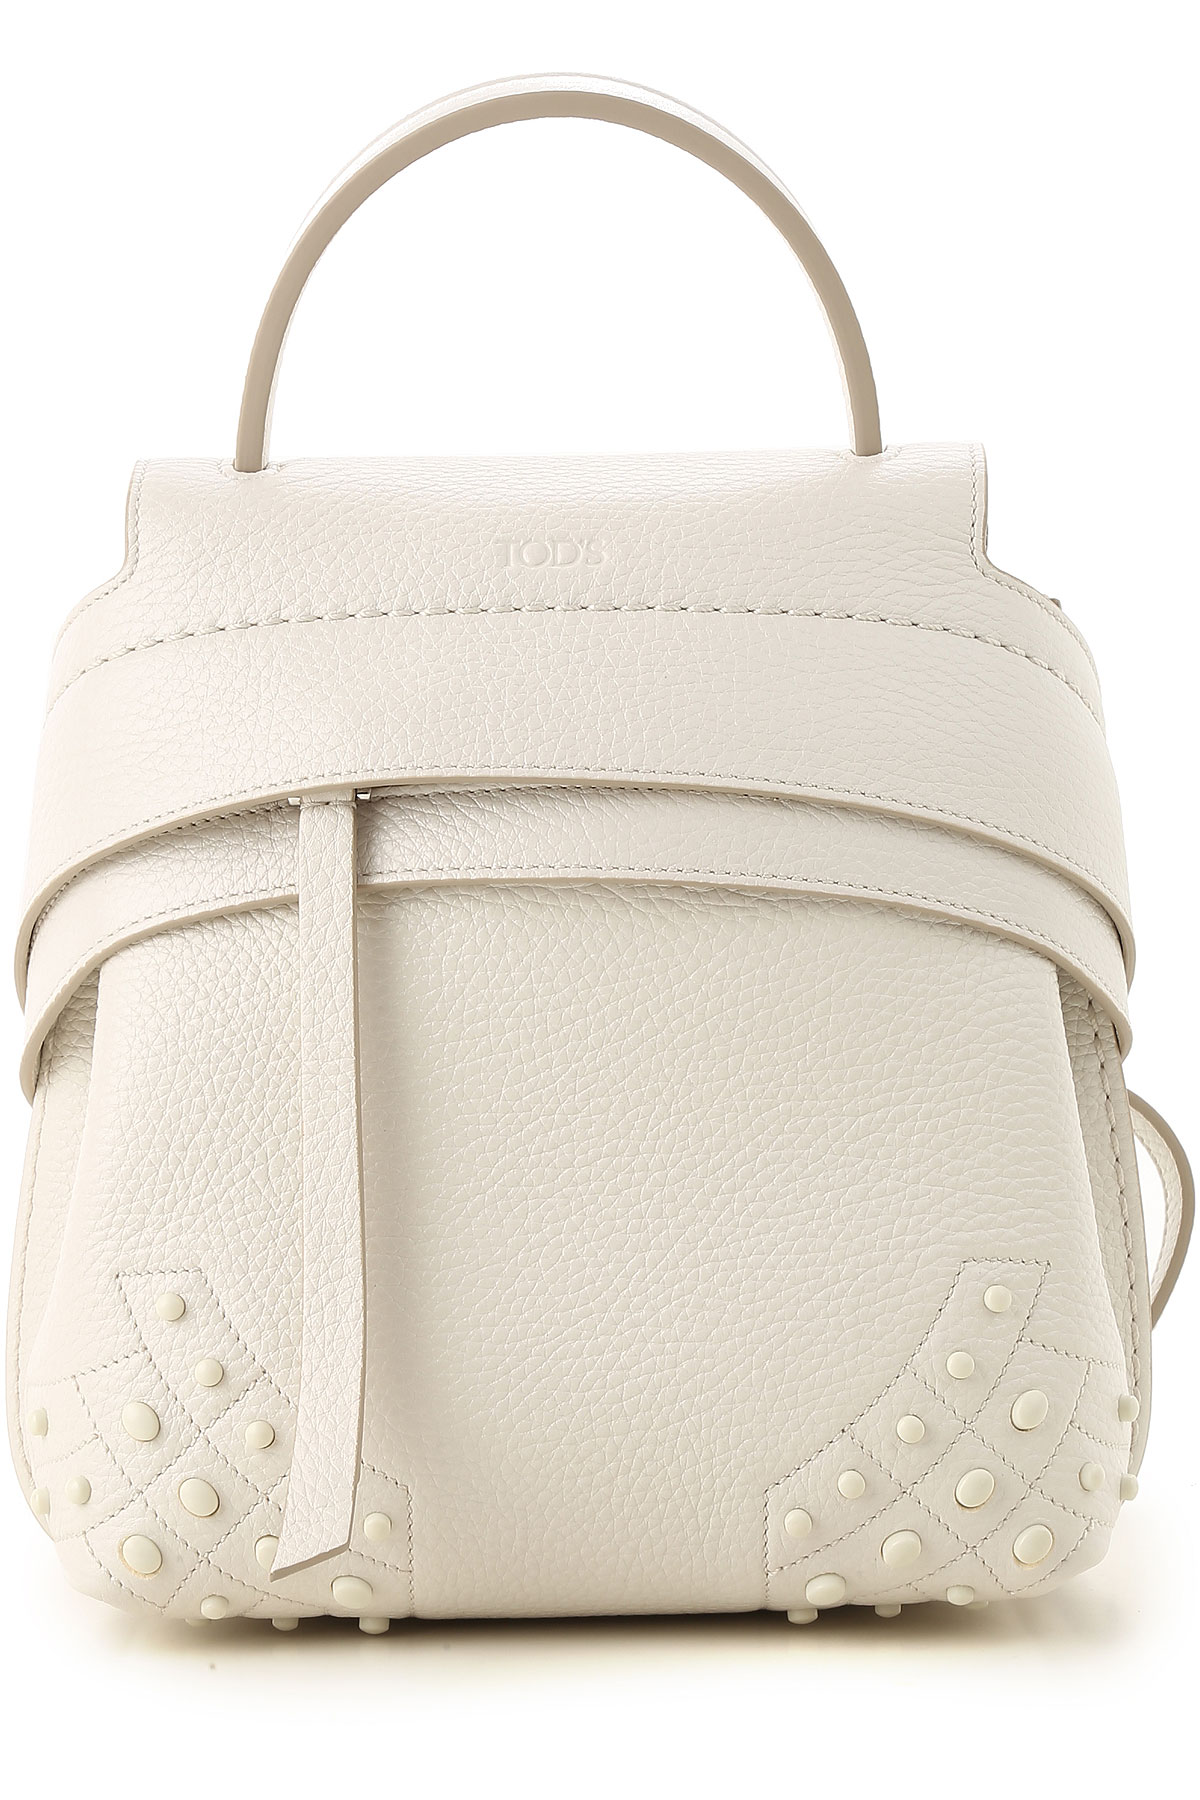 Image of Tods Backpack for Women, White, Leather, 2017